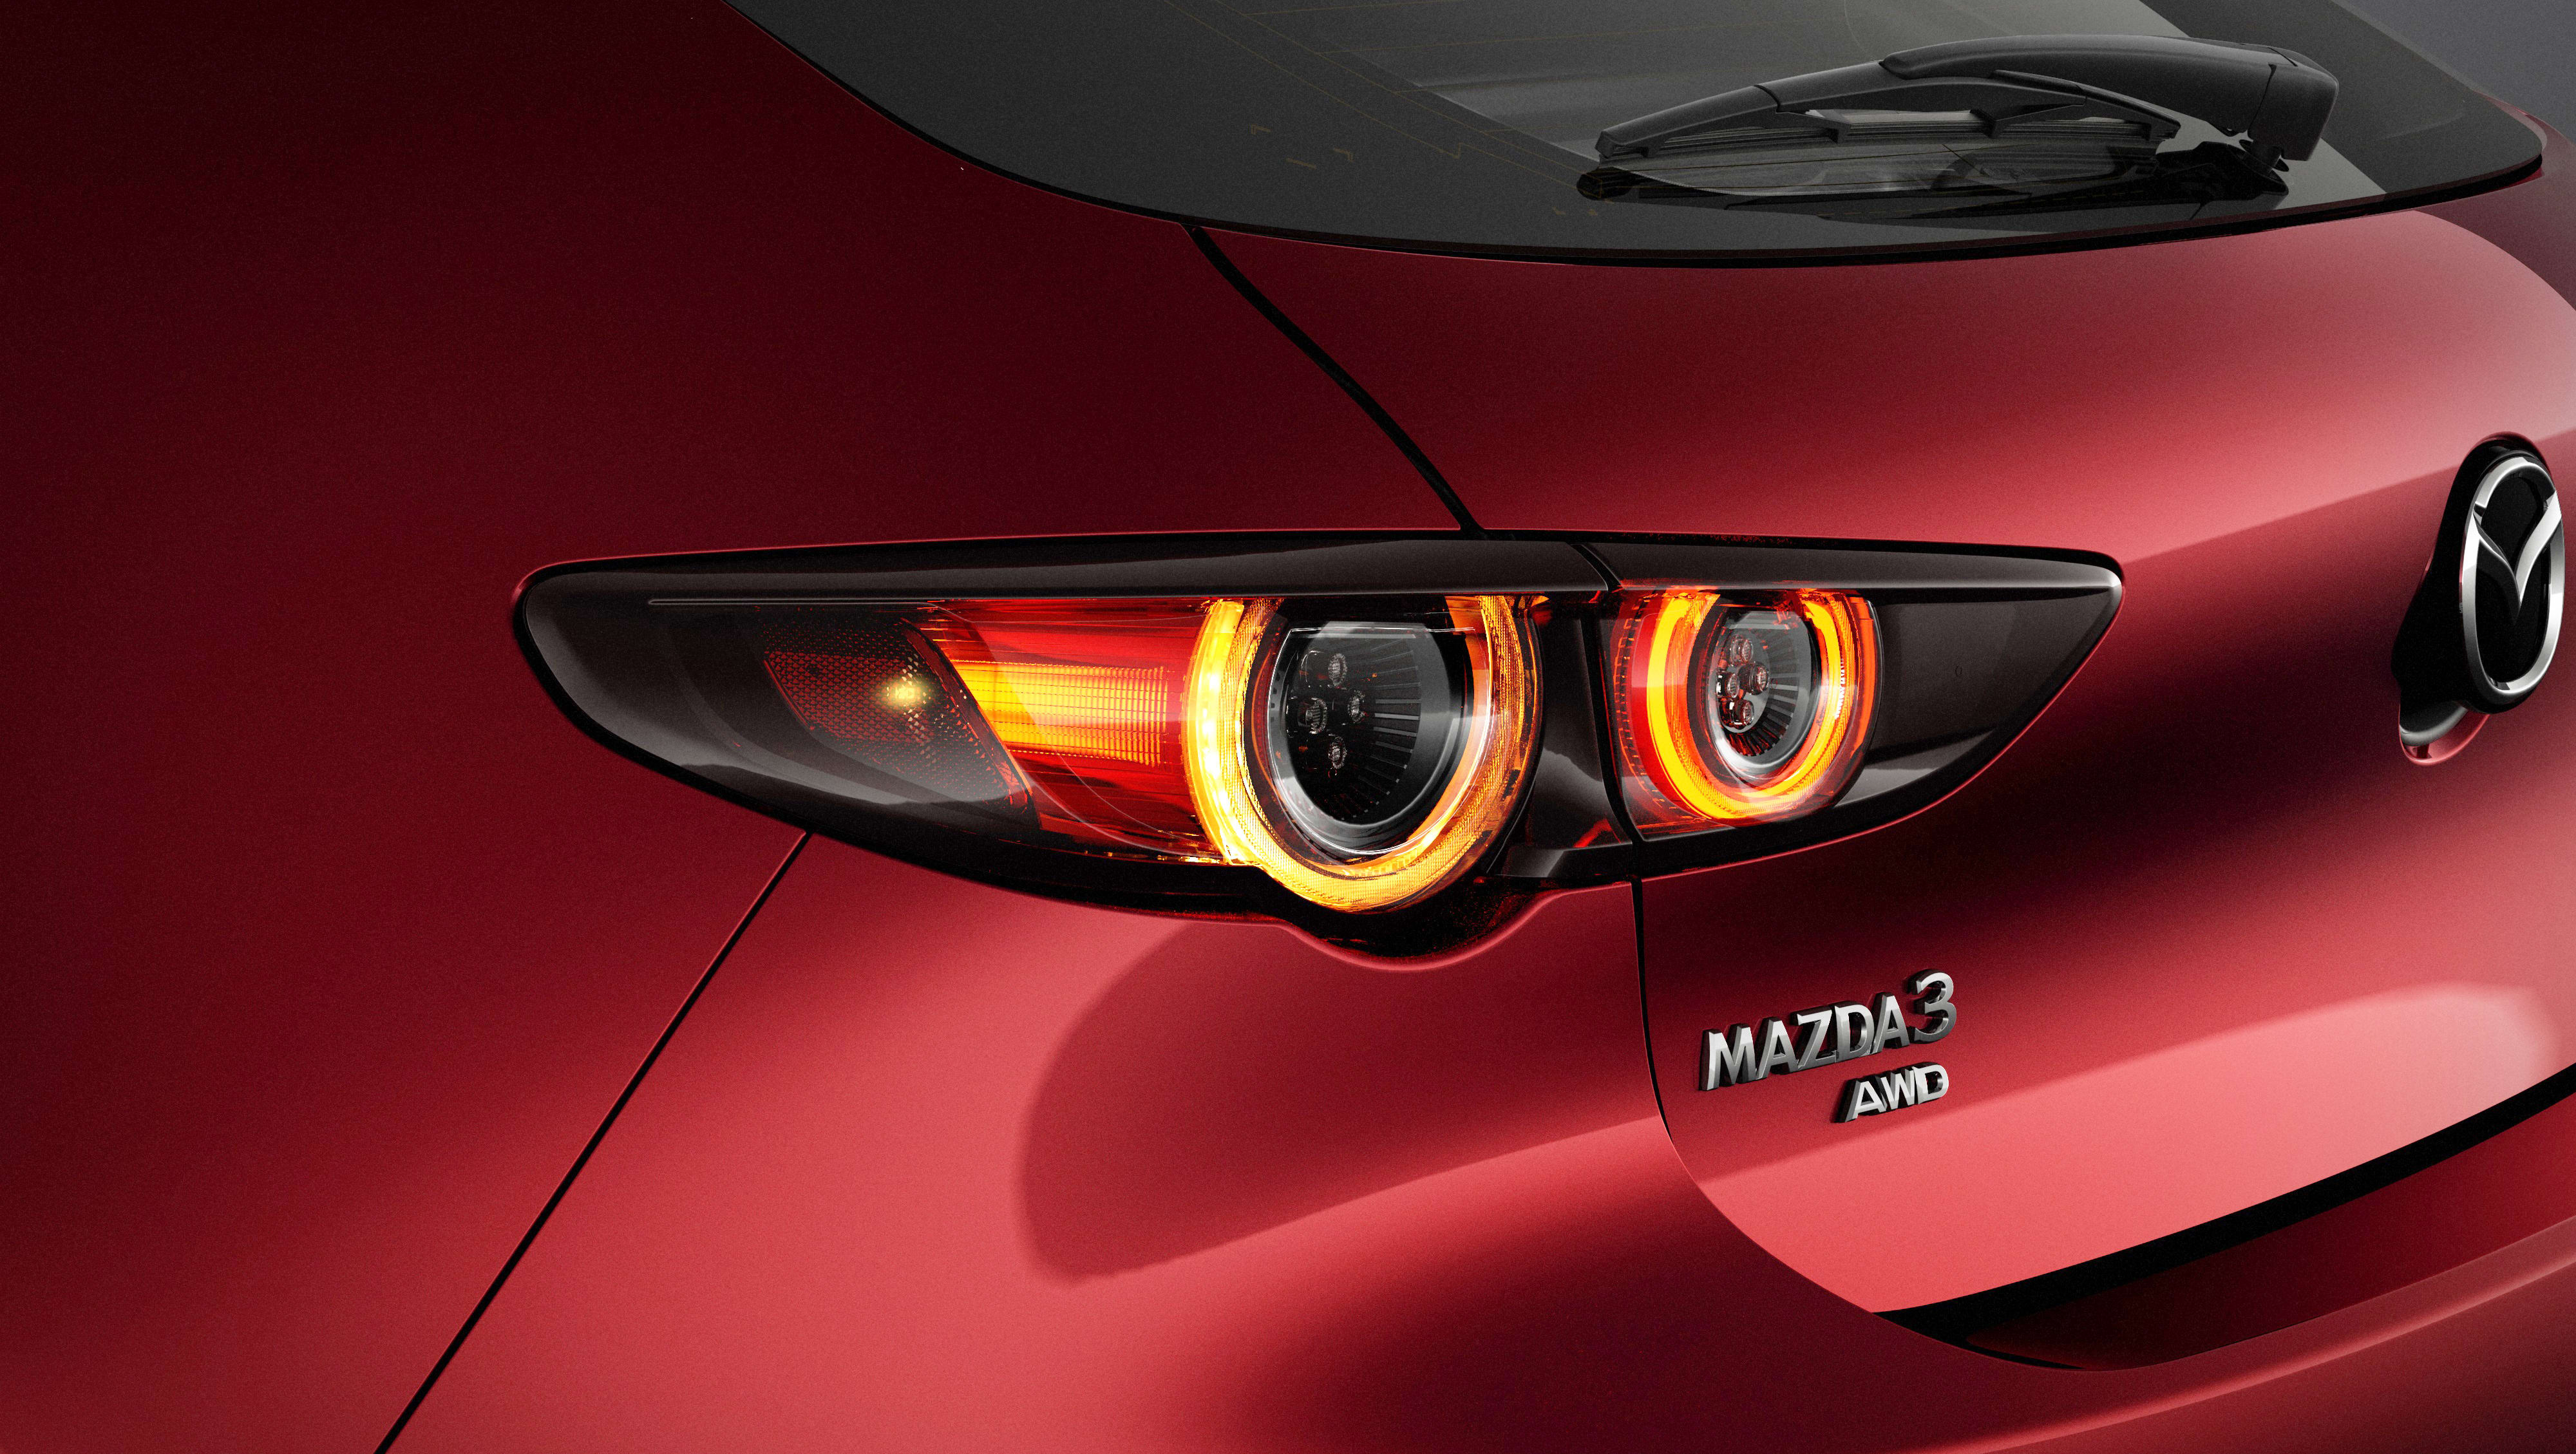 Mazda 3 2019 Revealed New Look Engines Technology For Small Car